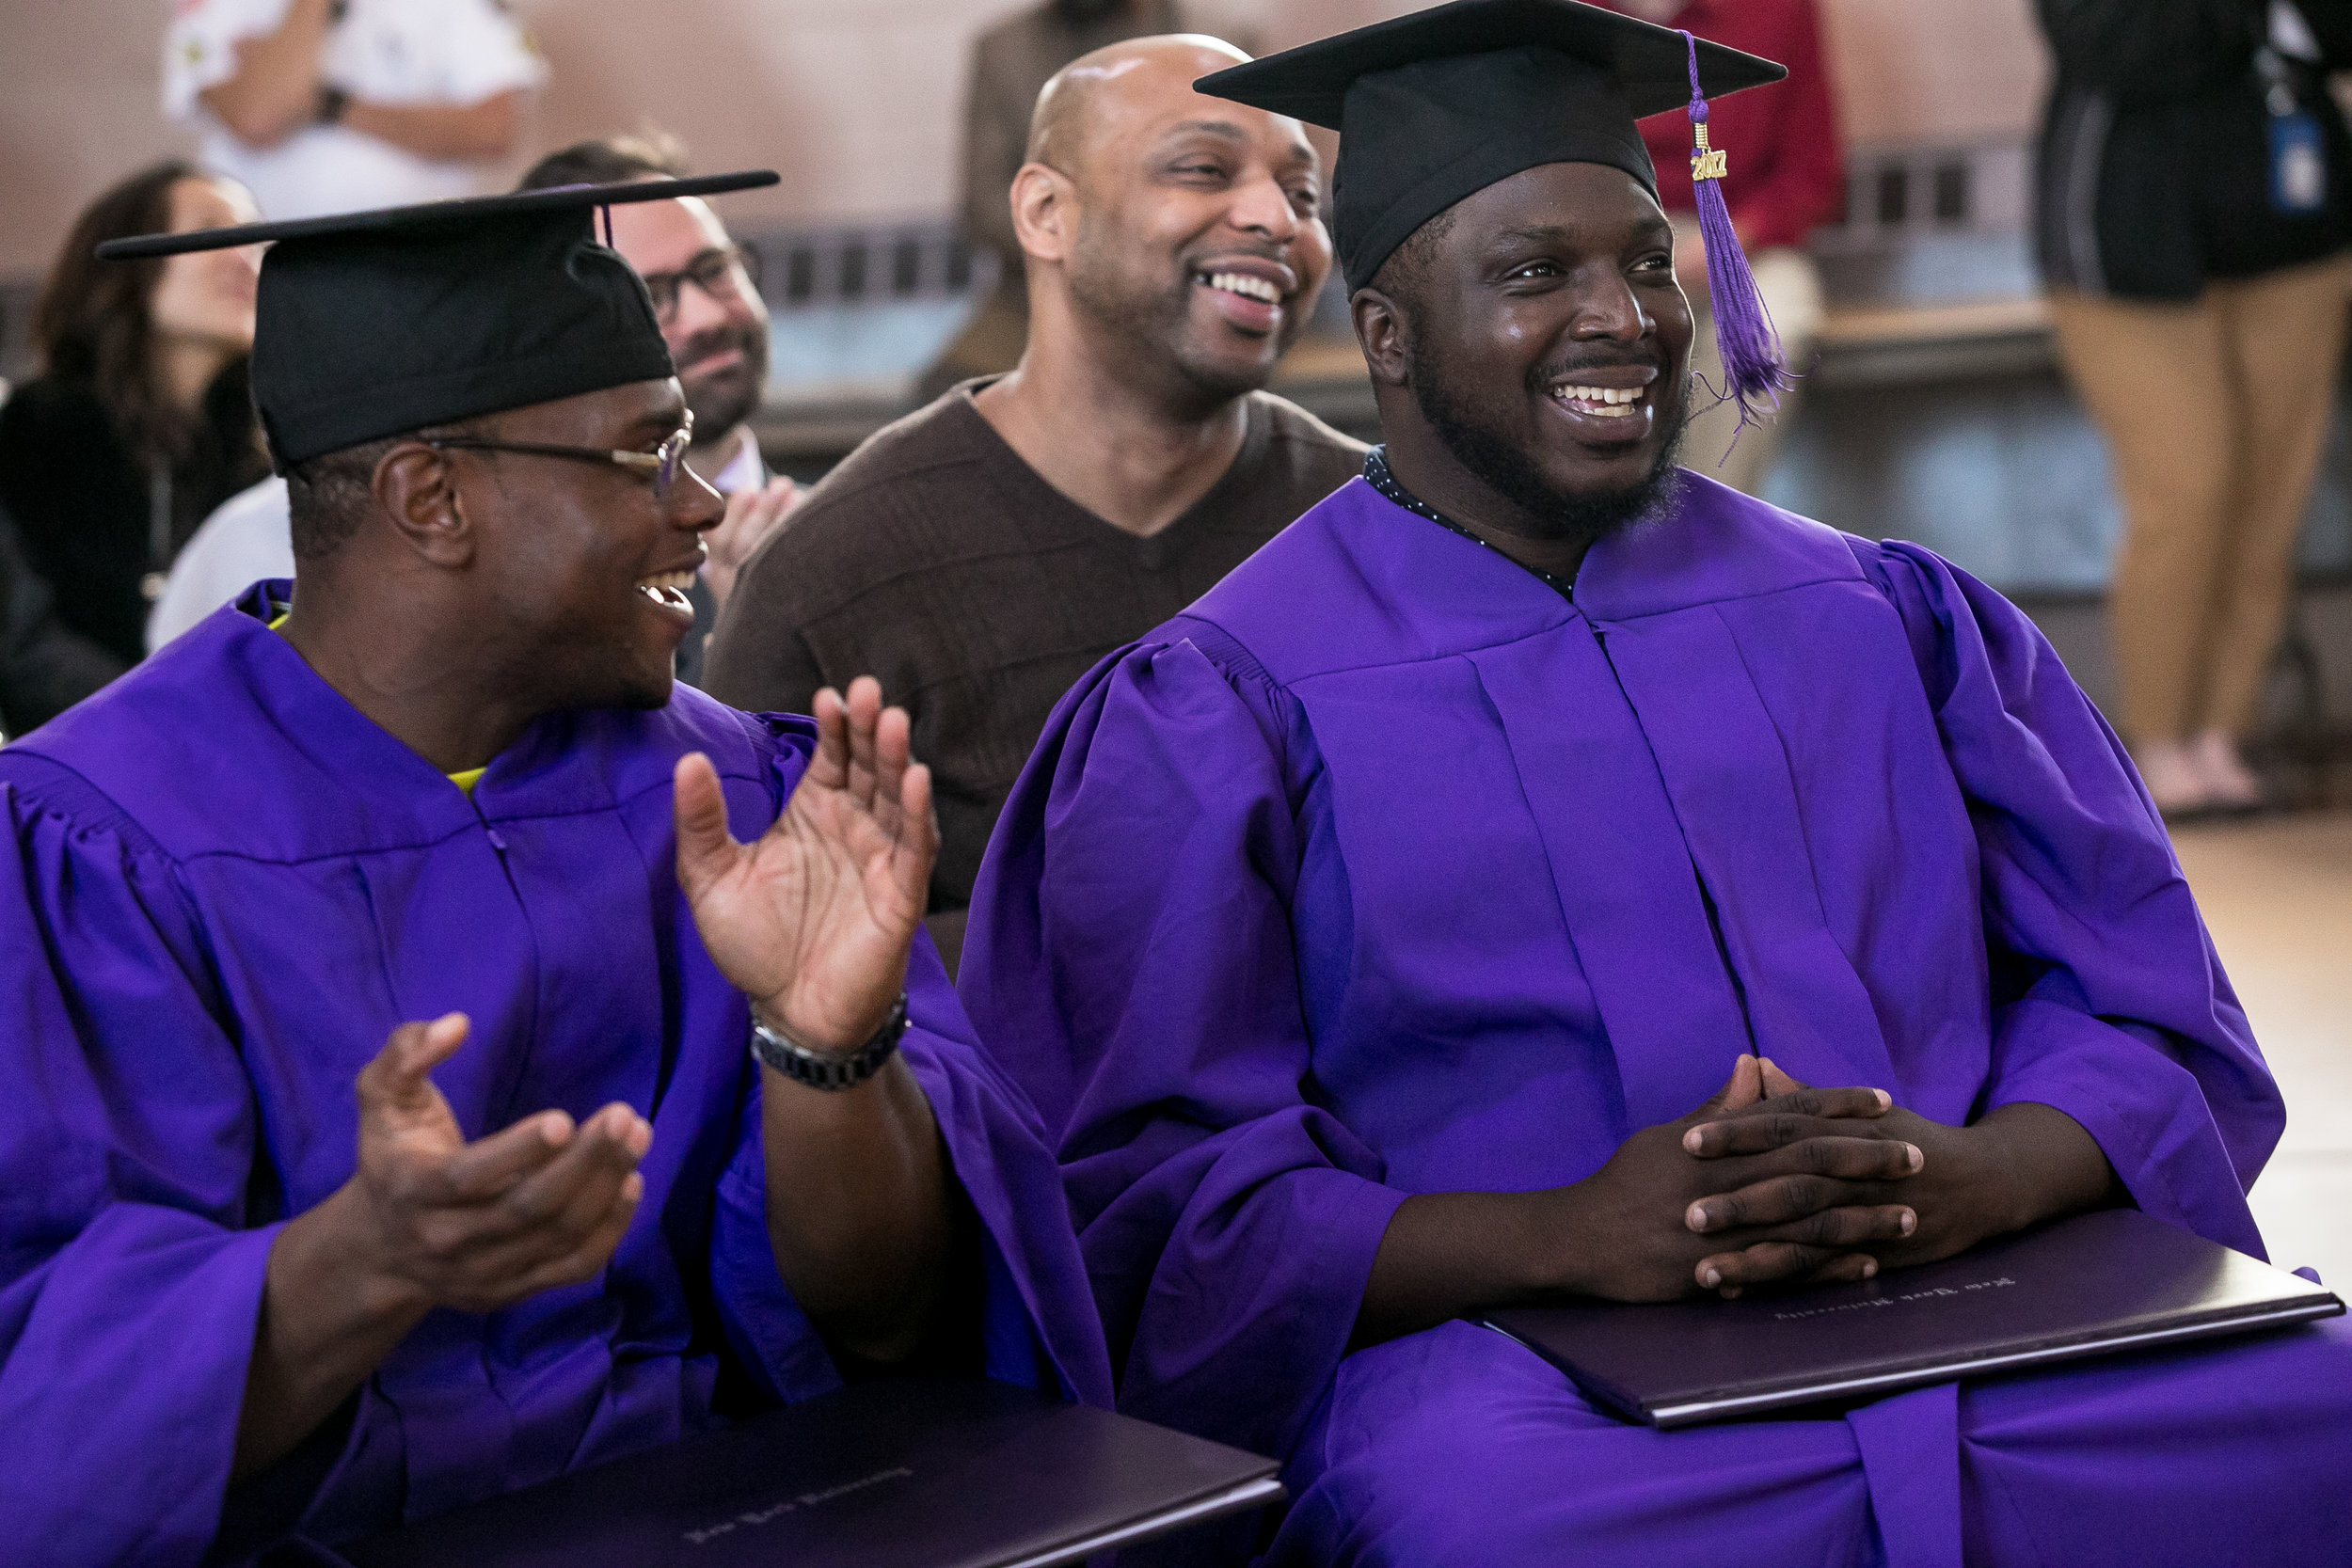 """Ryan, right, also returned to Wallkill for graduation after his release.""""We started in the program together, we're going to graduate together, we wanted to go out right,"""" he said to a  Washington Square News  reporter."""